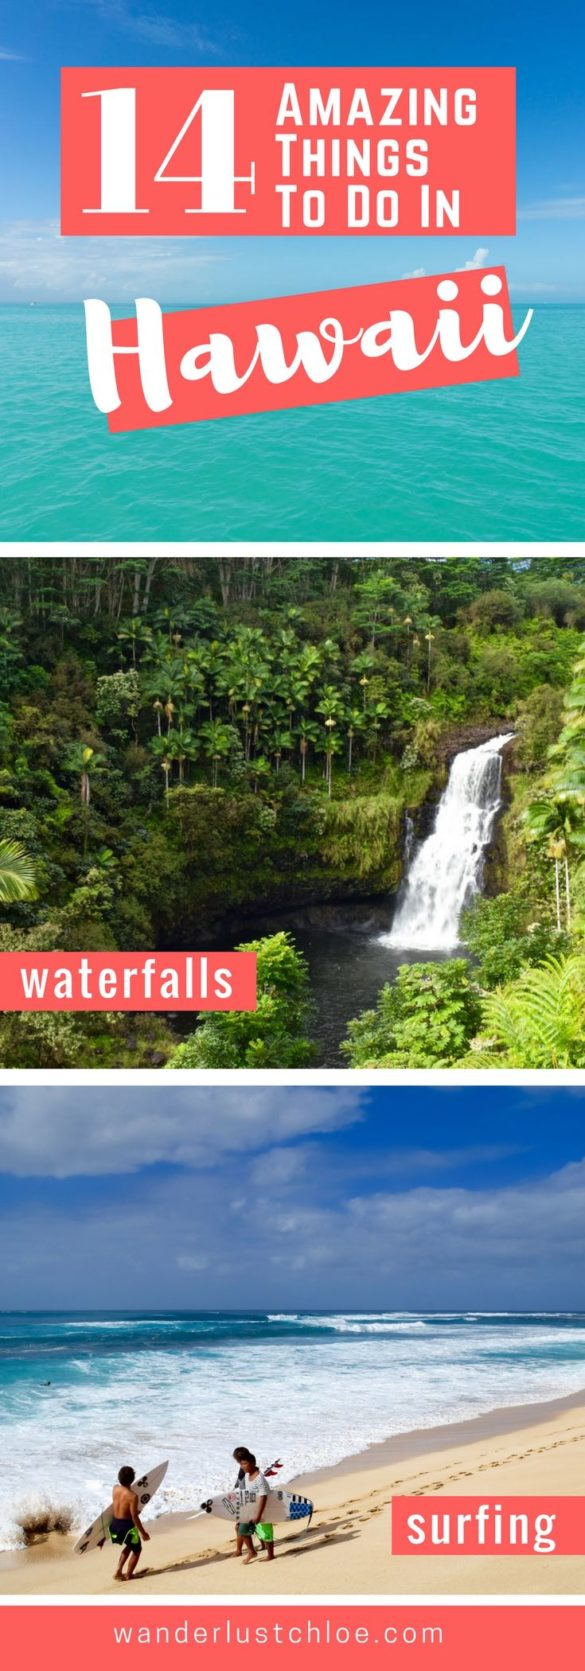 Amazing Things To Do In Hawaii